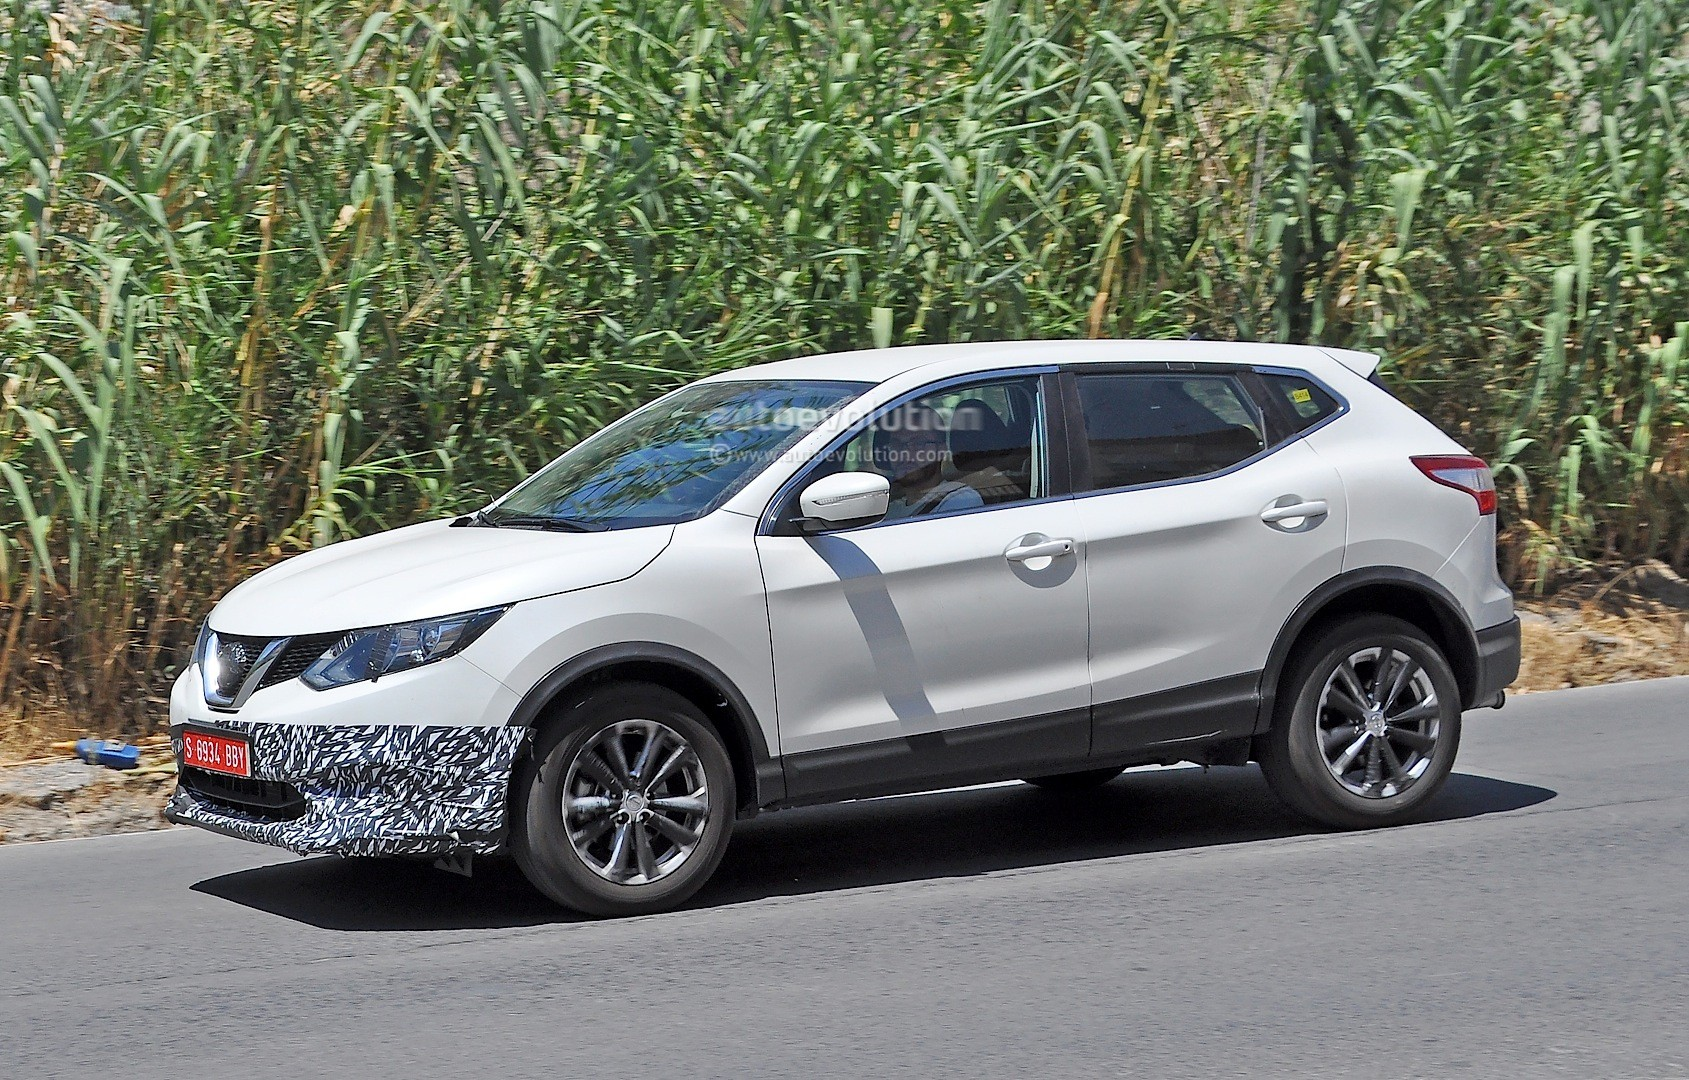 Us Spec Nissan Qashqai Spied Testing In Spain With Manlier Styling